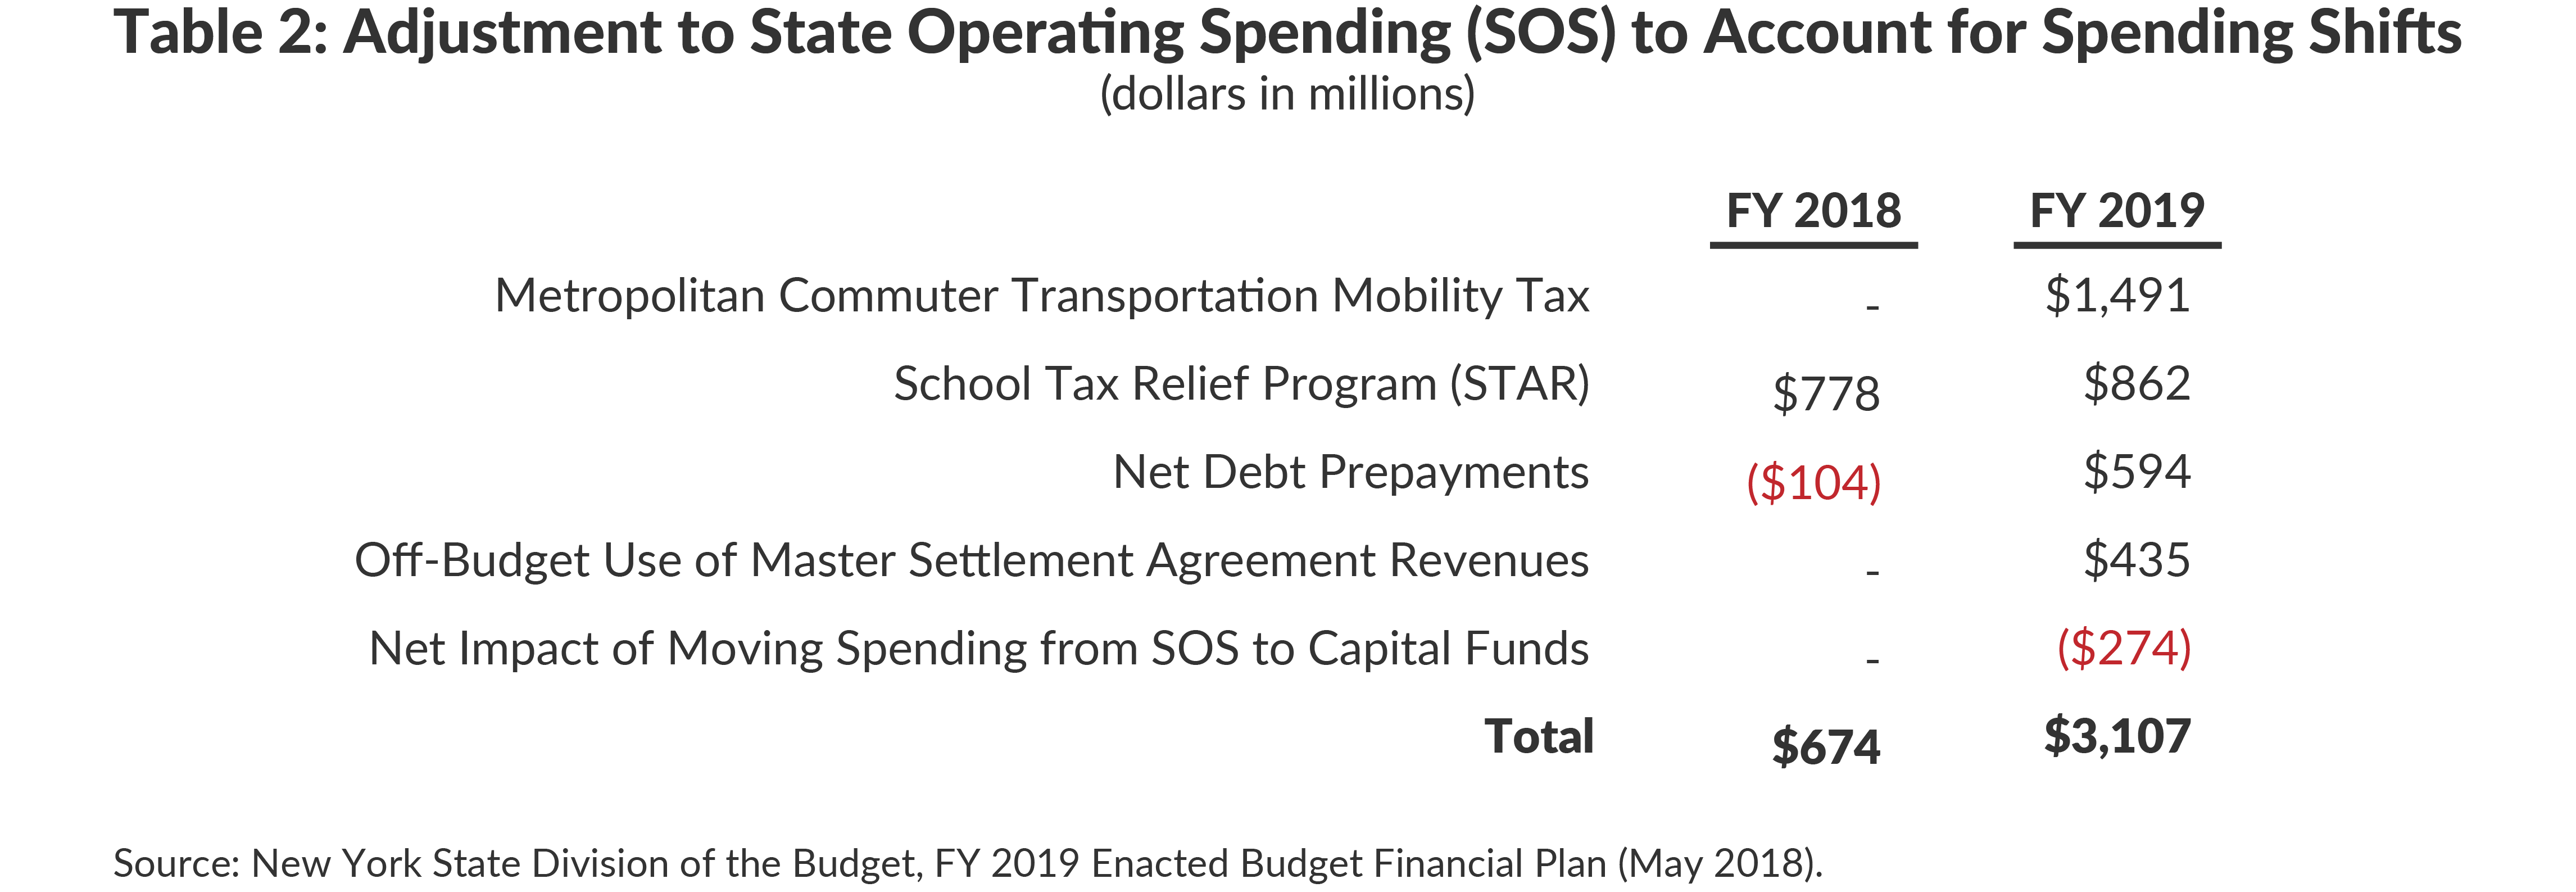 Table 2: Adjustment to State Operating Spending (SOS) to Account for Spending Shifts